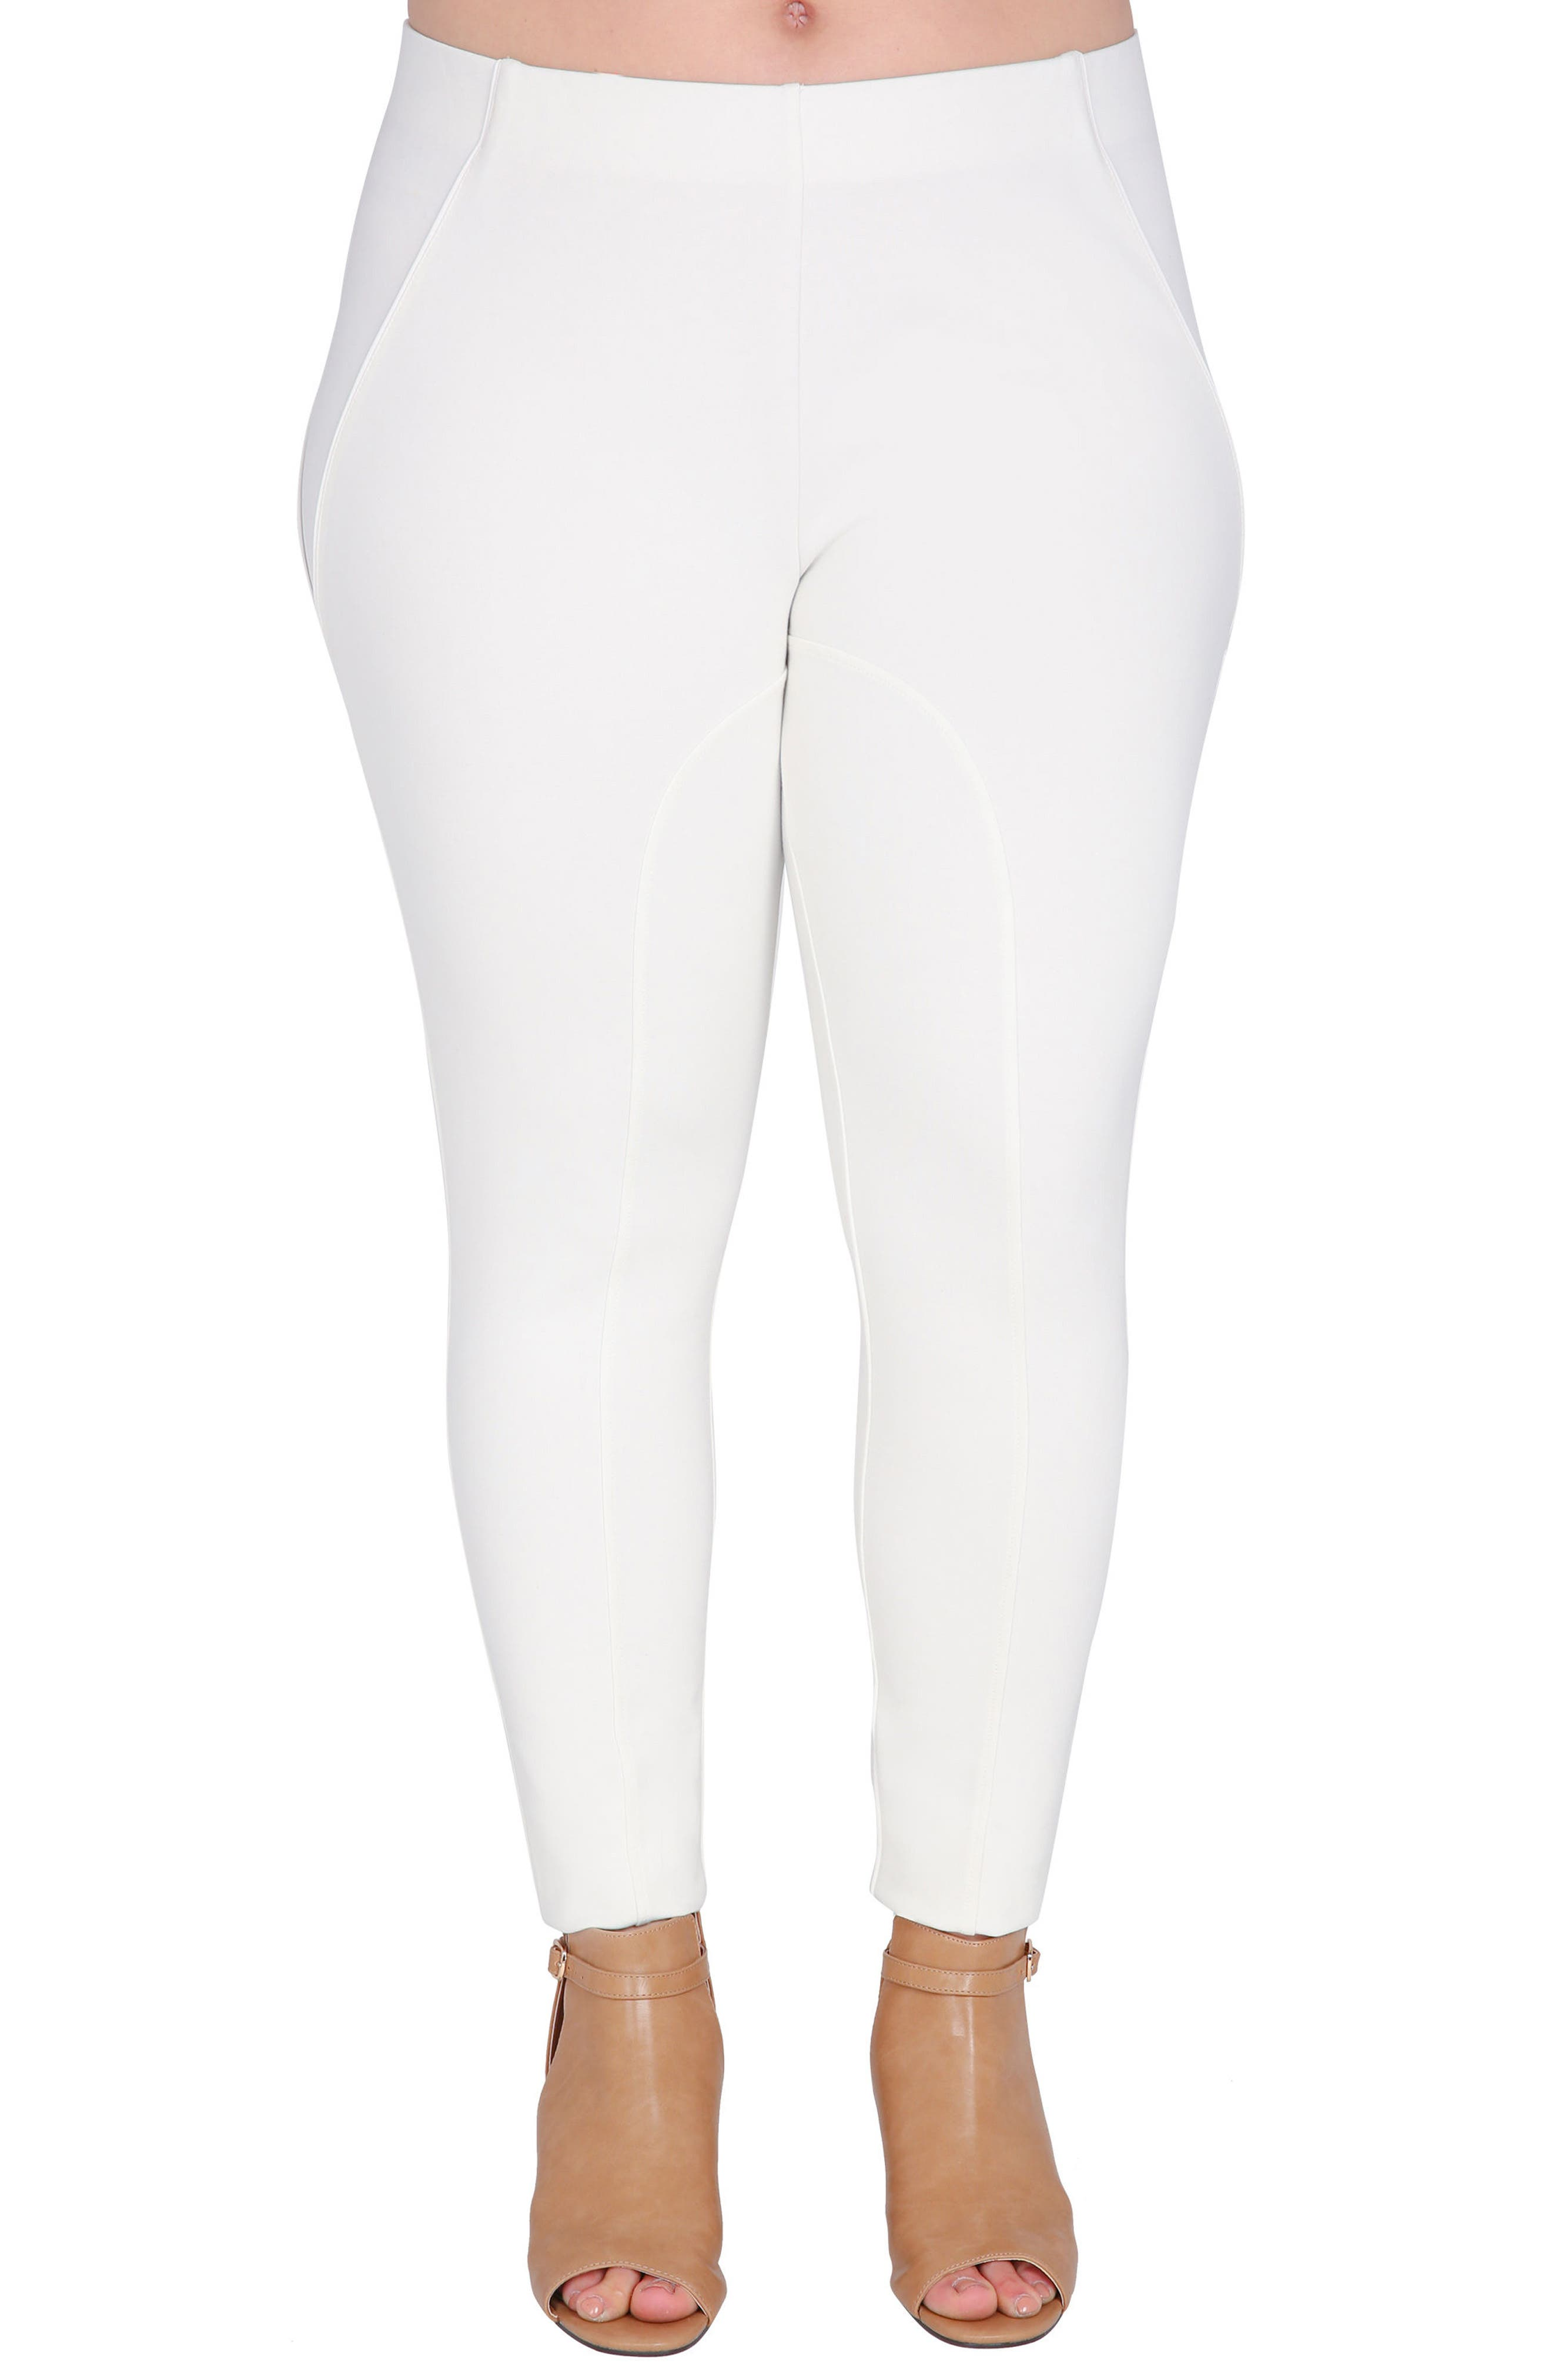 Belinda High Waist Ponte Leggings,                         Main,                         color, WHITE